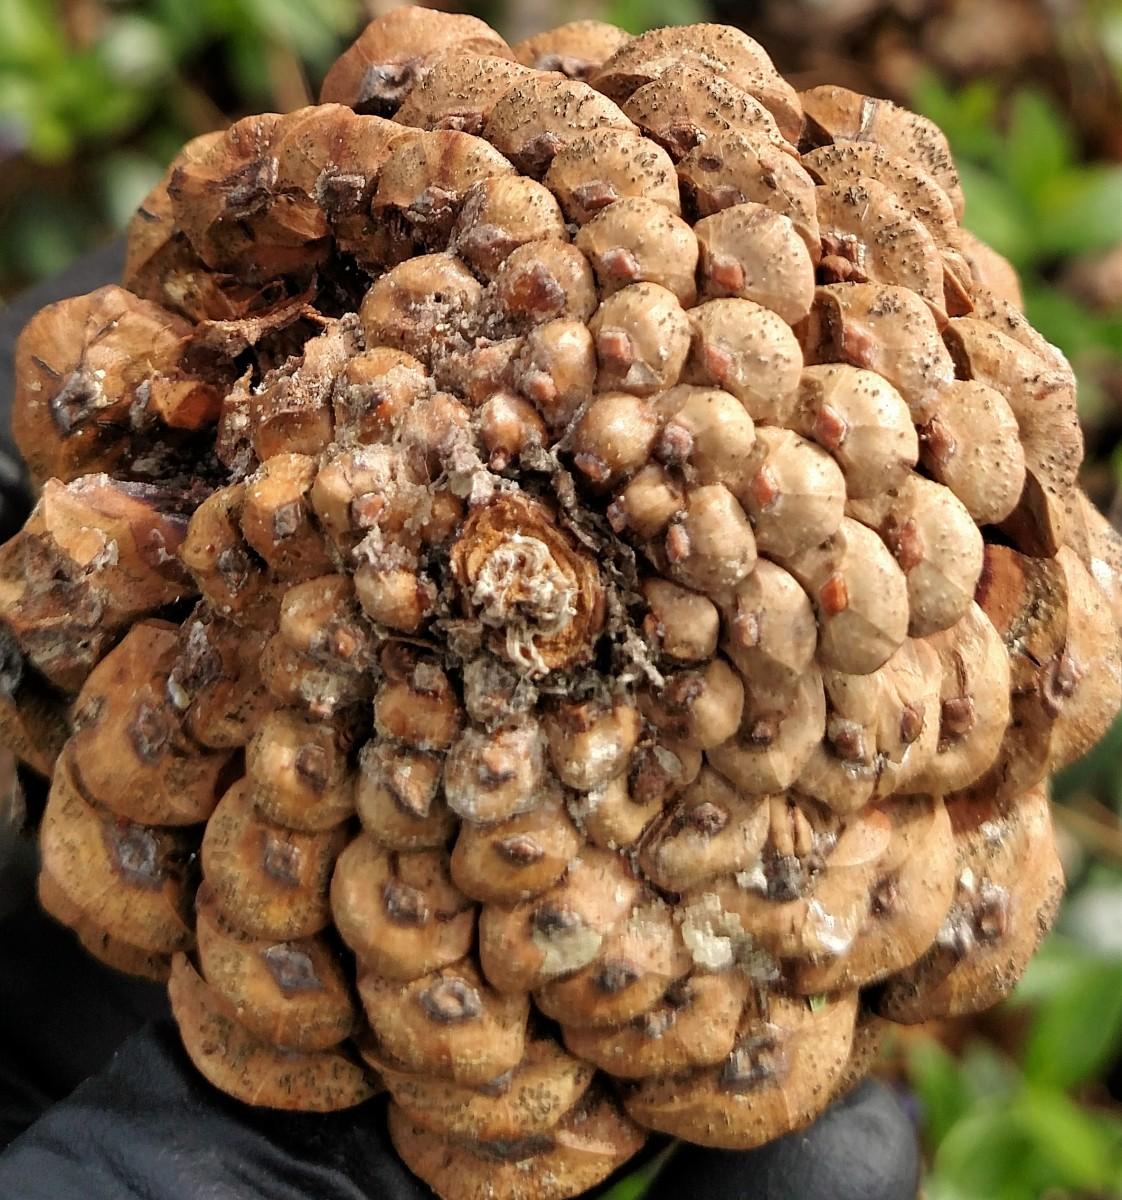 Pine cone with tip blight